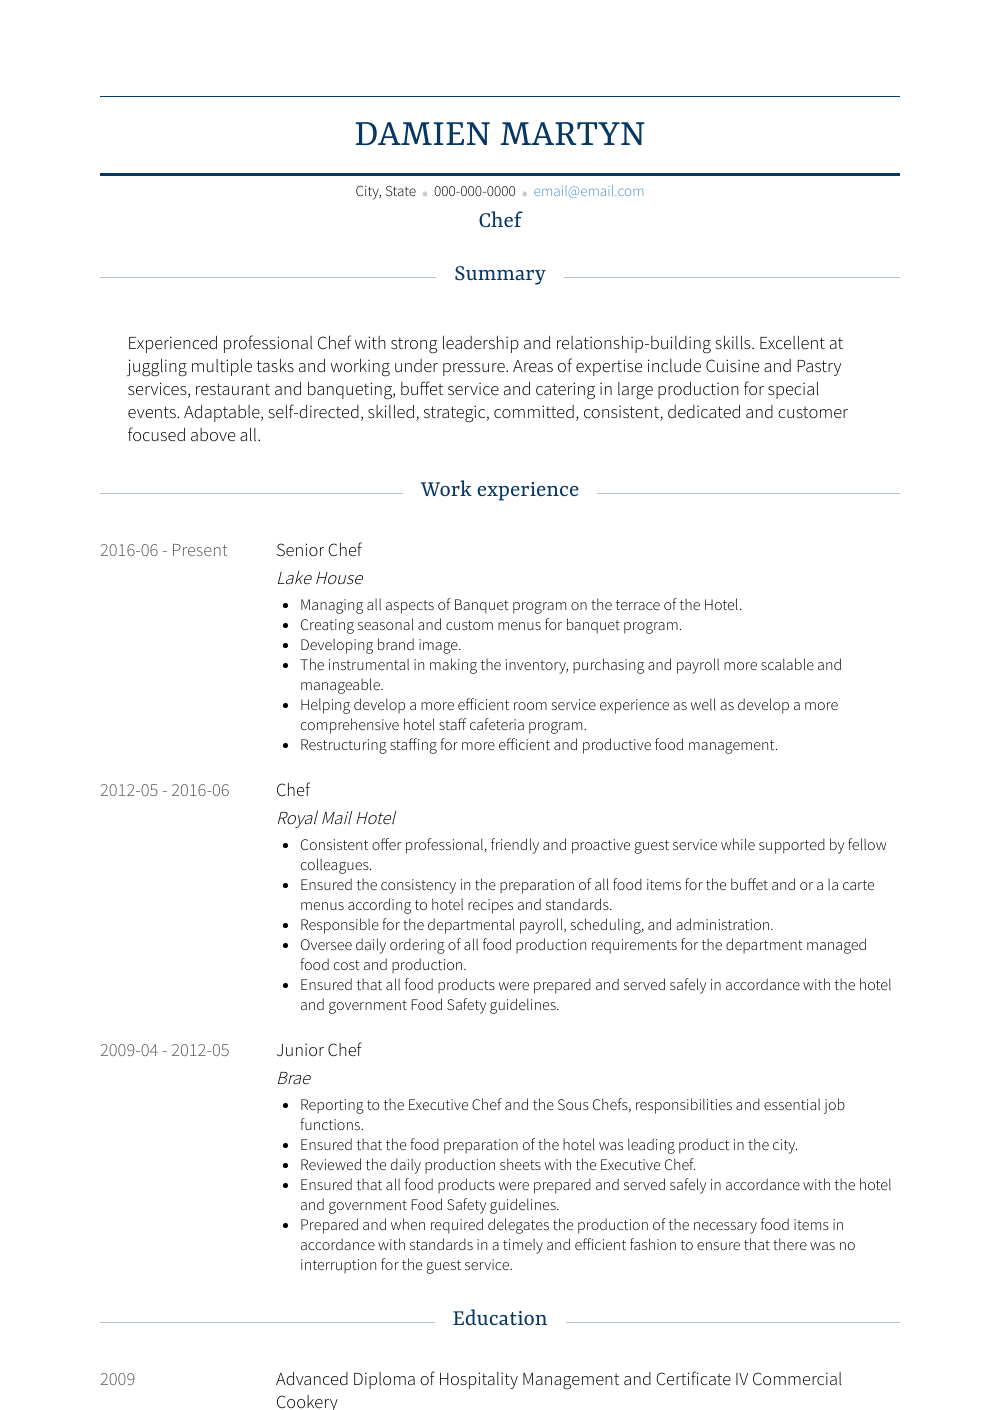 Chef Resume Sample and Template